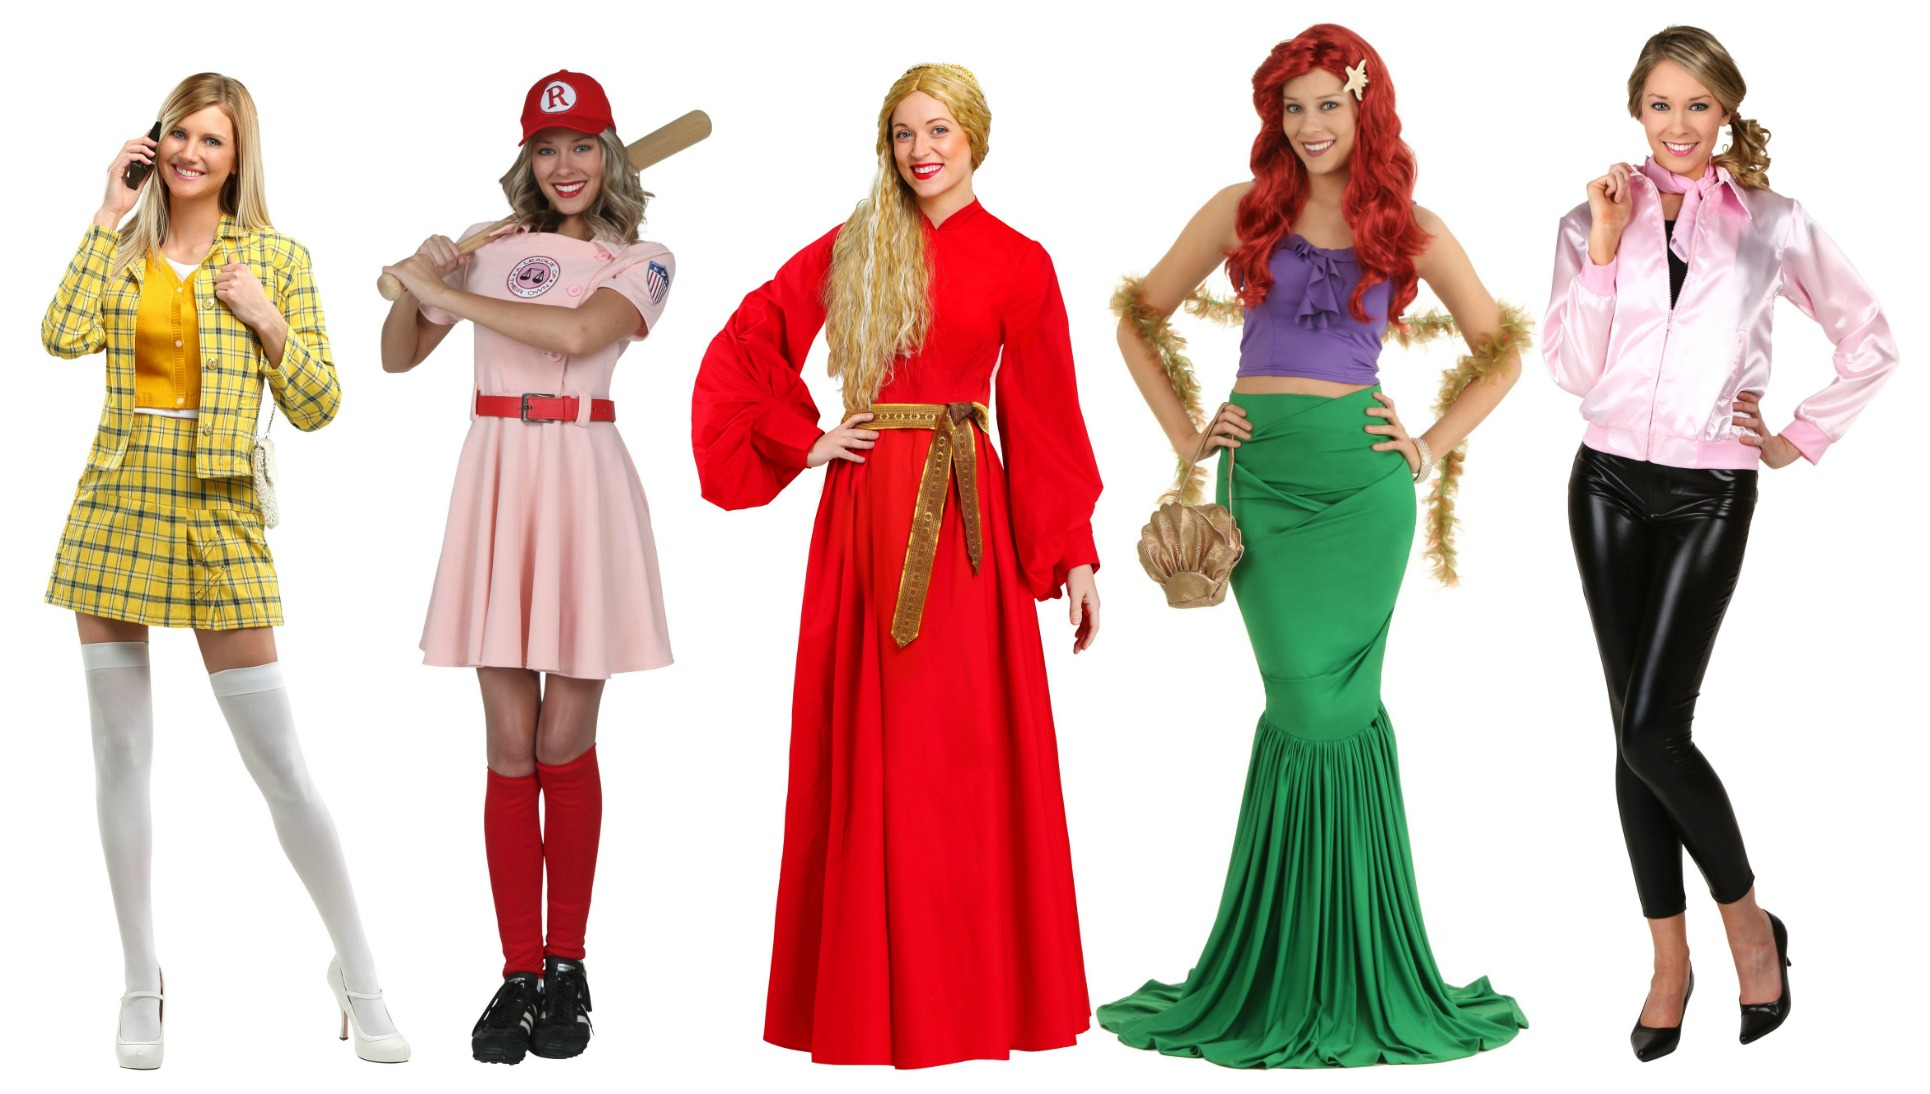 Halloween Costumes Ideas For Women.Halloween Dress Up Costume Ideas For All Ages Fun Blog